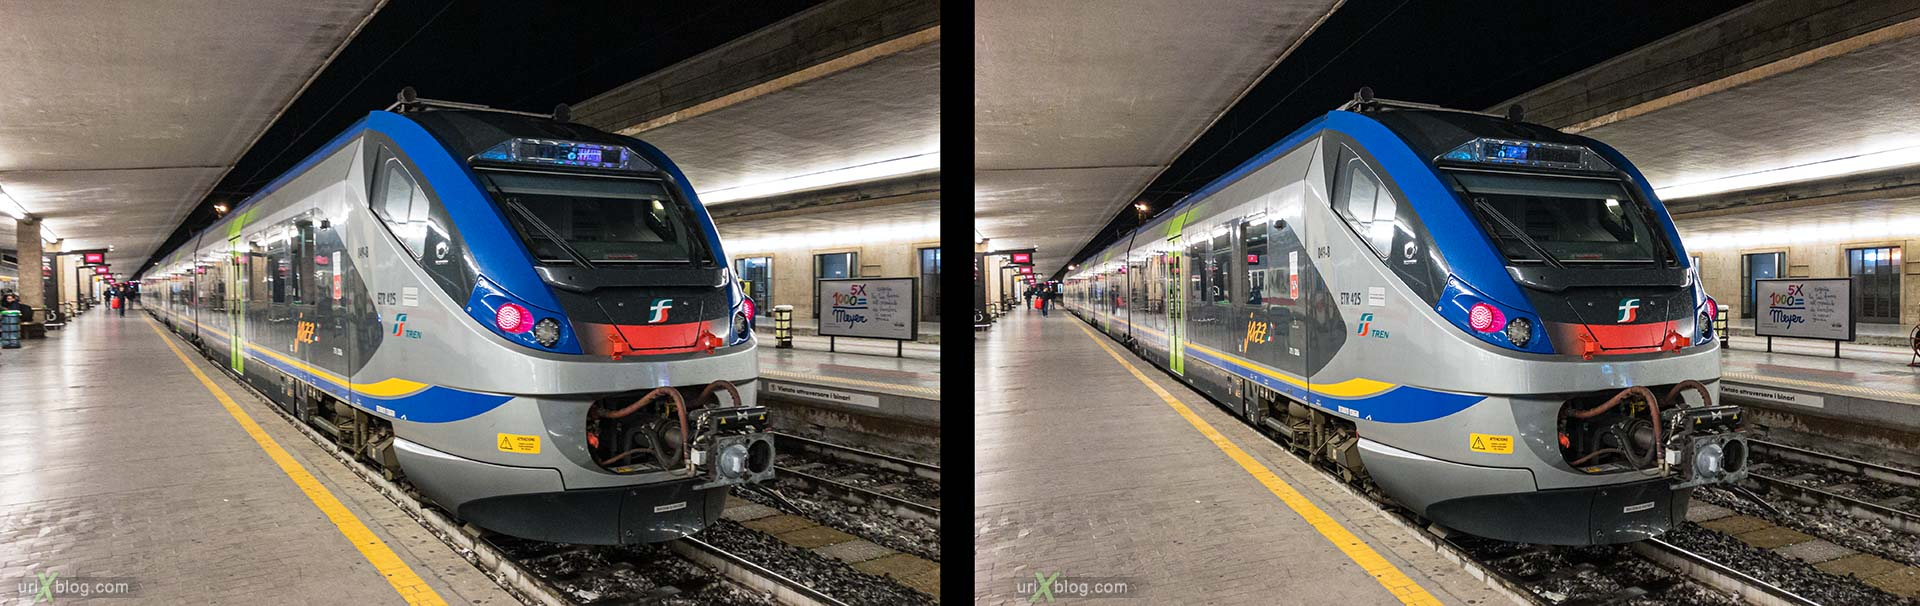 Santa Maria Novella, Florence, train station, train, electric locomotive, Italy, 3D, stereo pair, cross-eyed, crossview, cross view stereo pair, stereoscopic